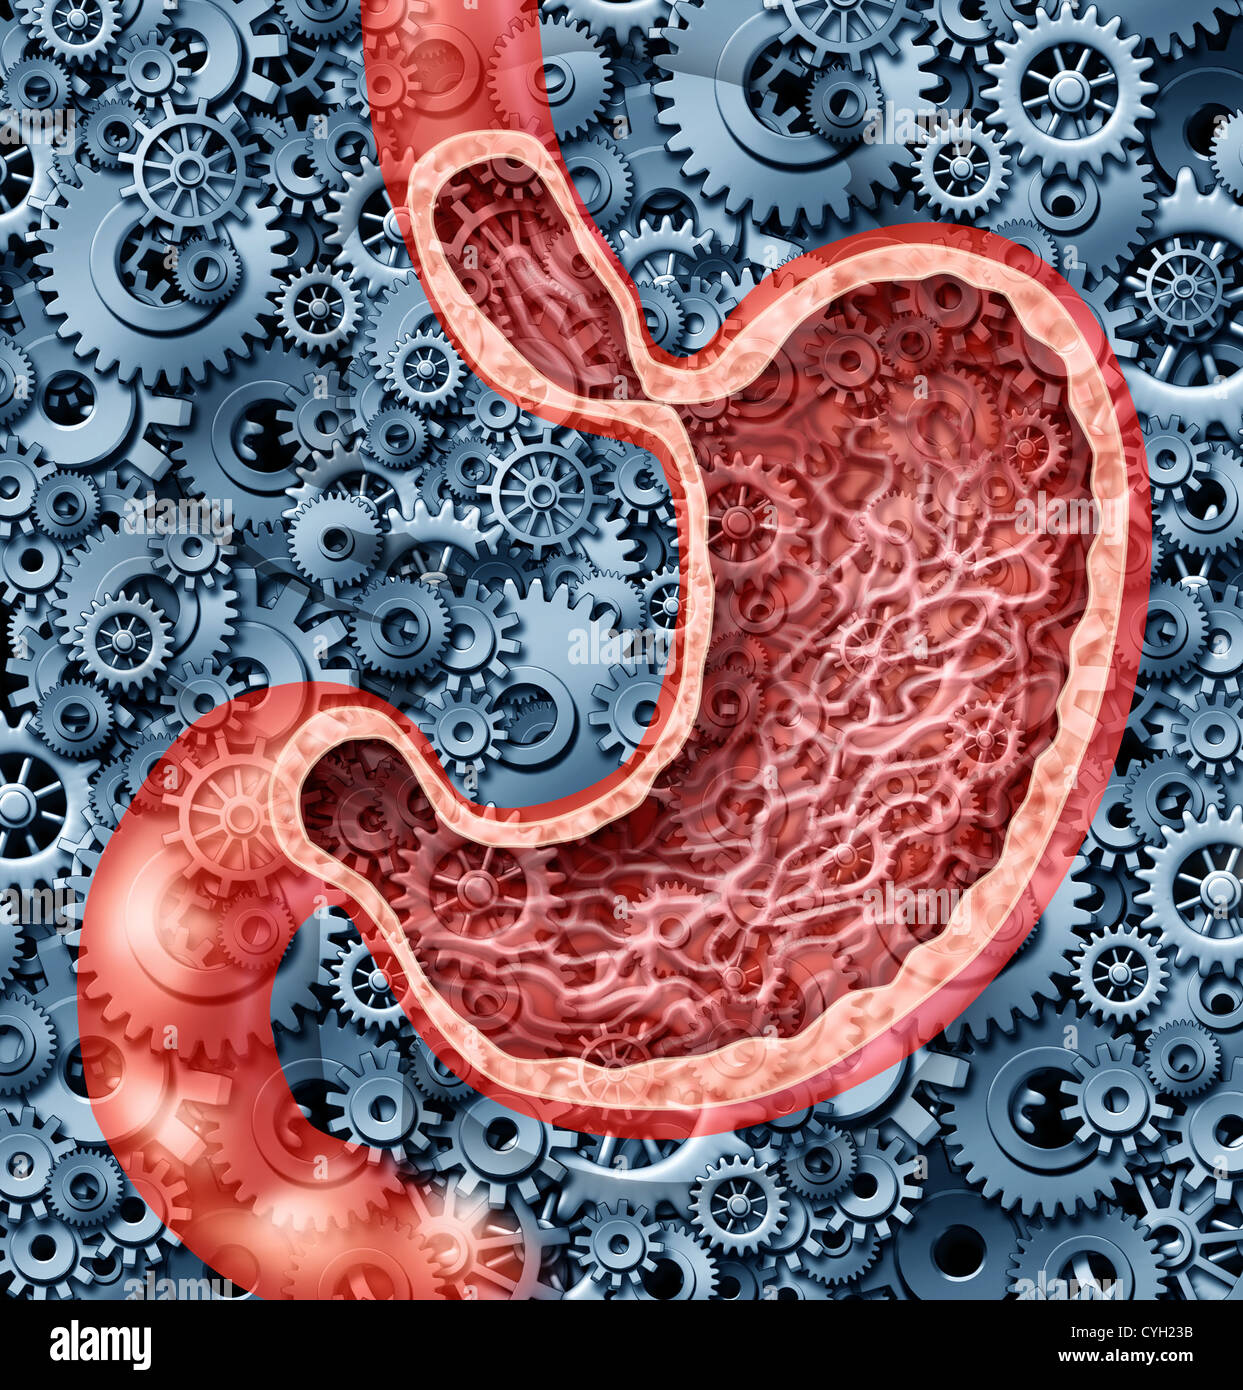 Human Digestion Function As A Stomach Anatomy Of The Human Internal